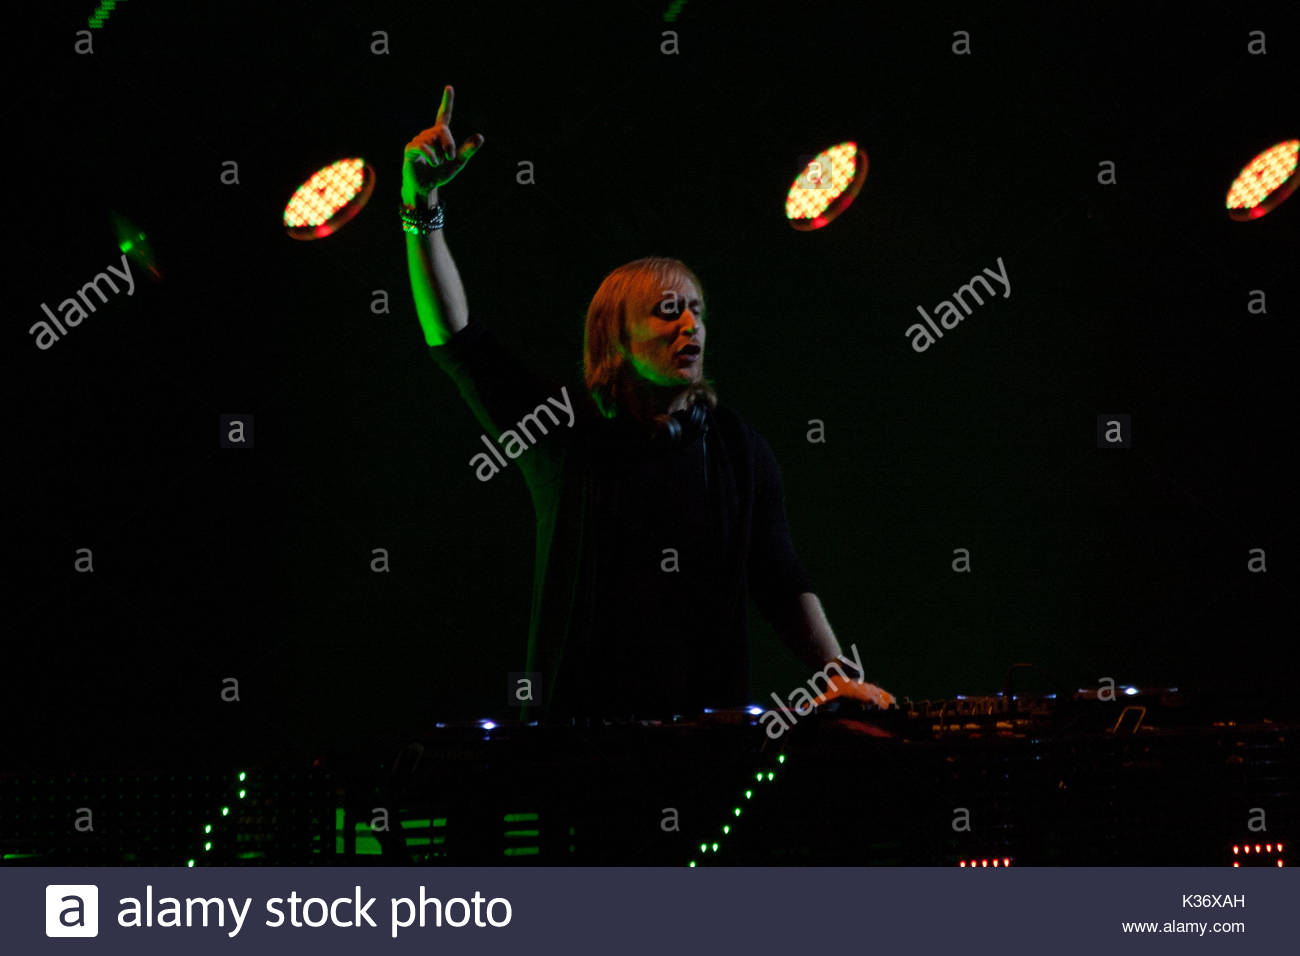 House quetta stock photos house quetta stock images alamy for American house music